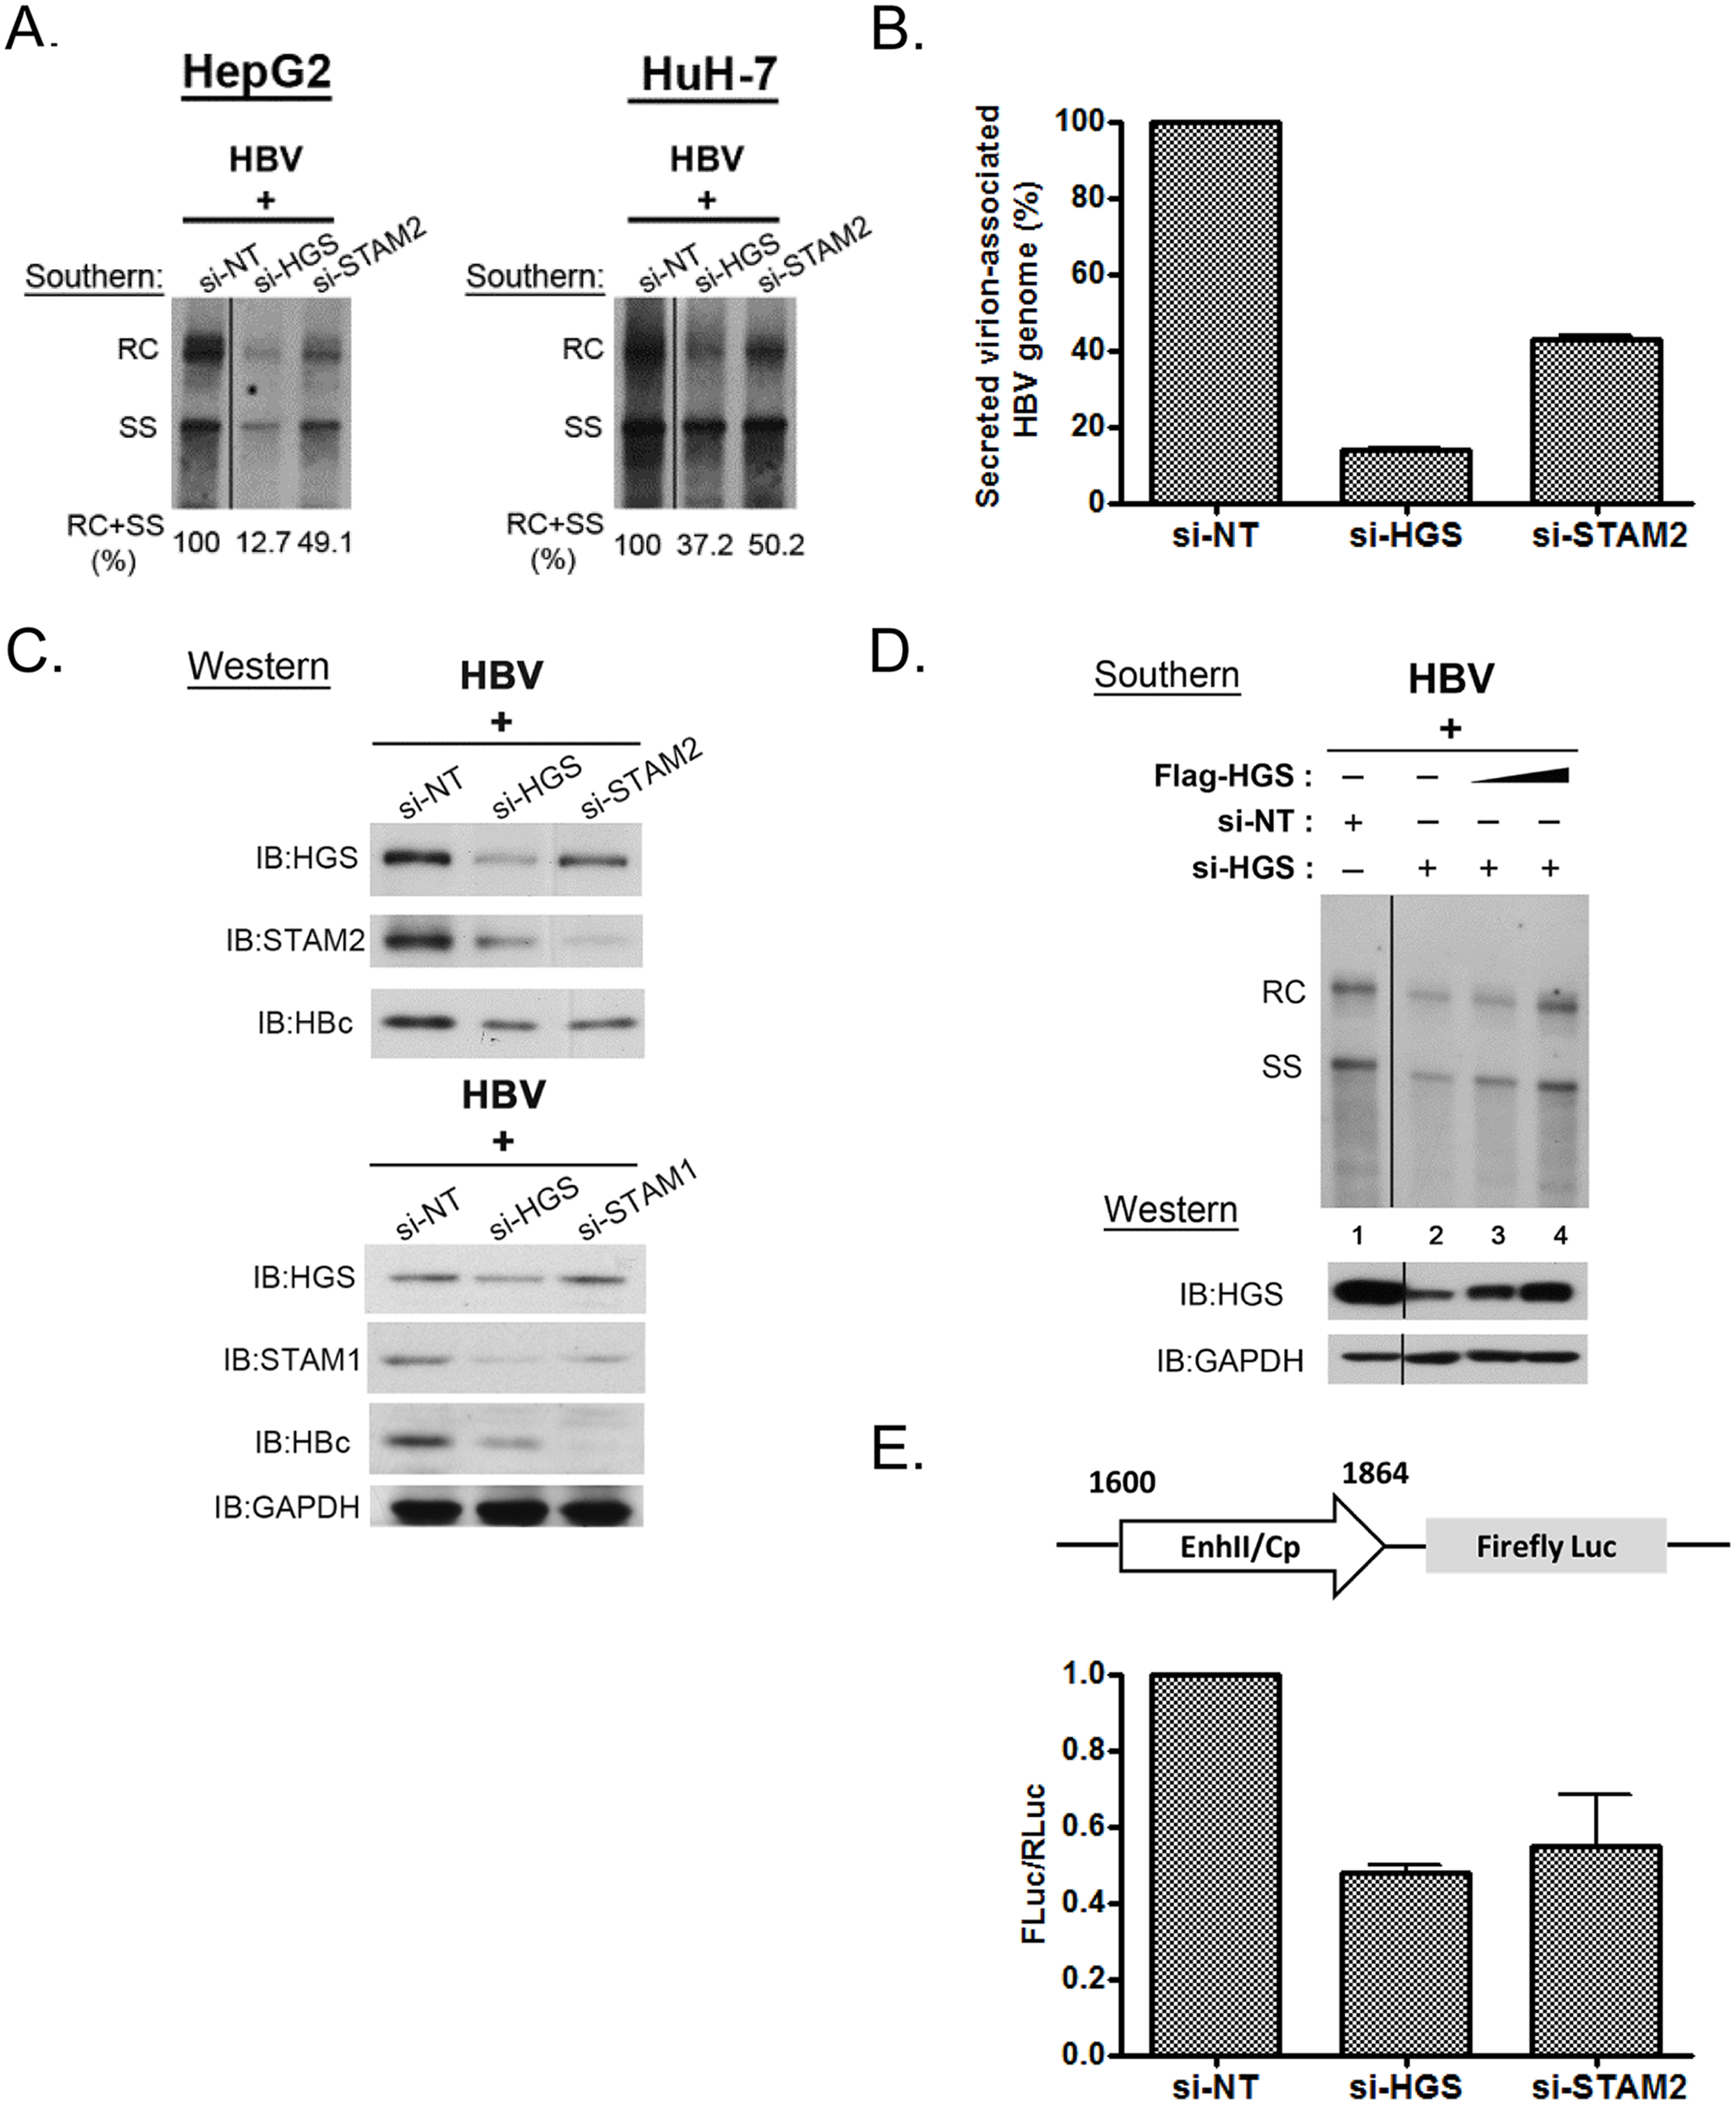 Knockdown of HGS destabilized ESCRT-0 complex and inhibited core protein expression and HBV replication.